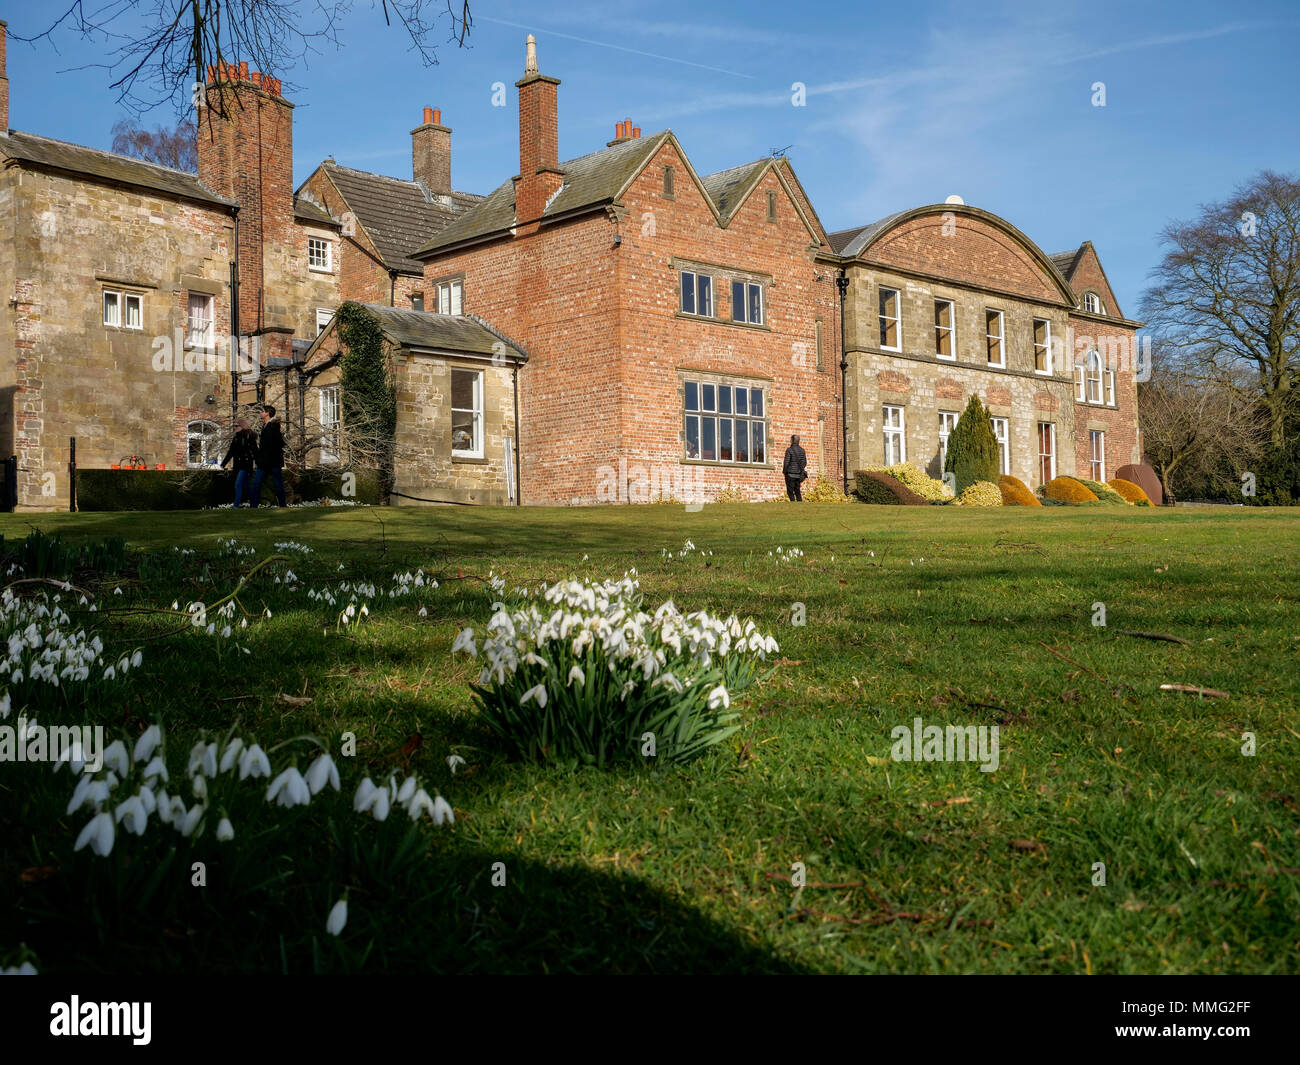 Hopton Hall in Derbyshire England - Stock Image